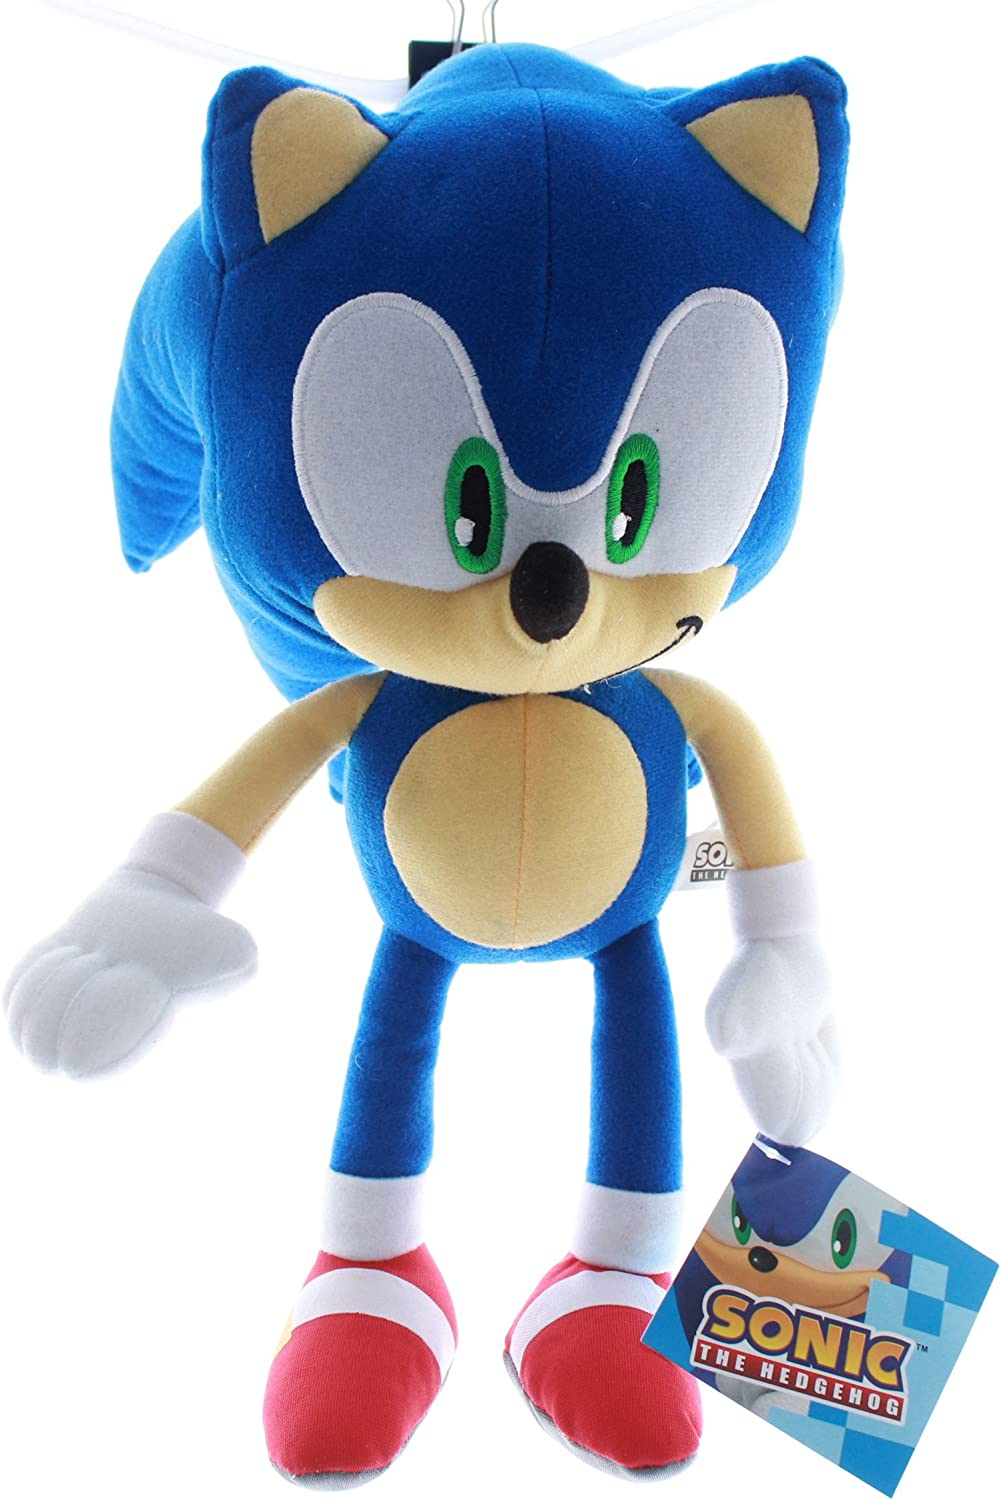 Amazon Com Sonic The Hedgehog Plush Toy Kids Boys Girls 13 Toys Games